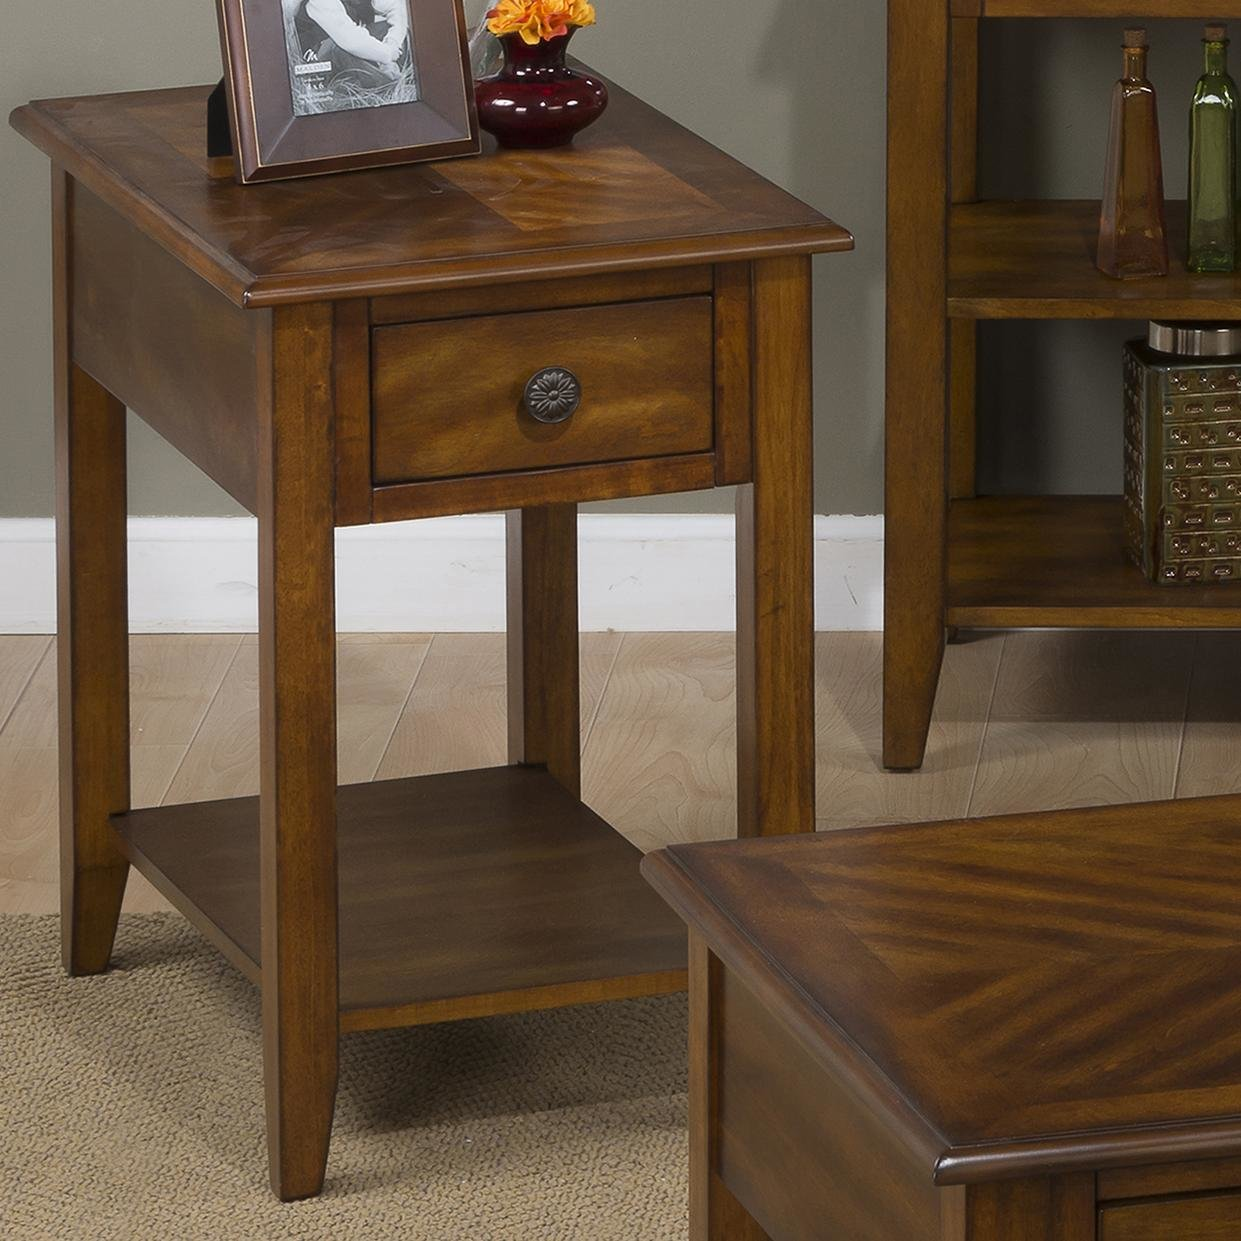 copper accent table hadley end with storage drawer quickview small cabinet legs home goods dressers reclaimed wood bar west elm dresser tablecloth patio ice bucket crochet runner